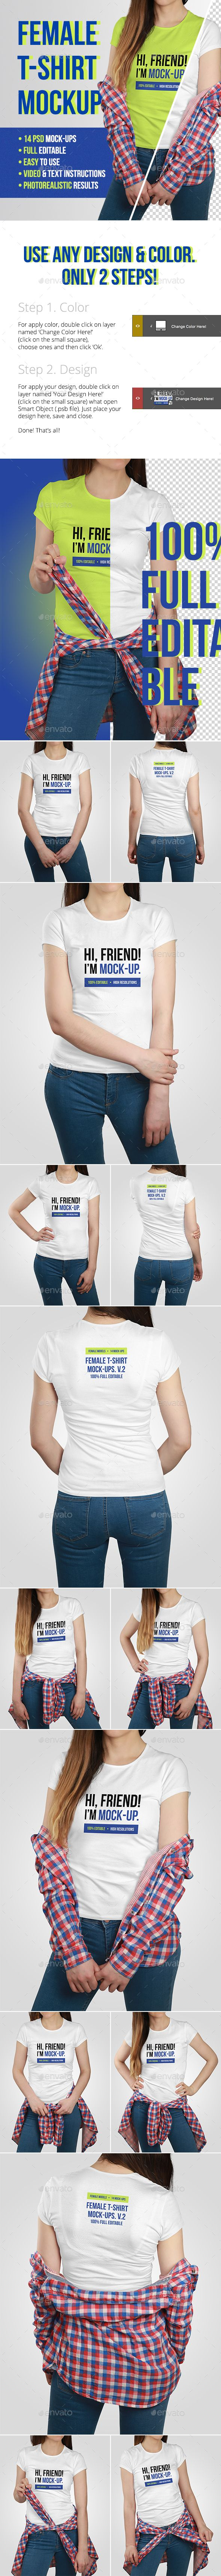 Download Female T Shirt Mockups Vol 2 Clothing Mockup Shirt Mockup Tshirt Mockup